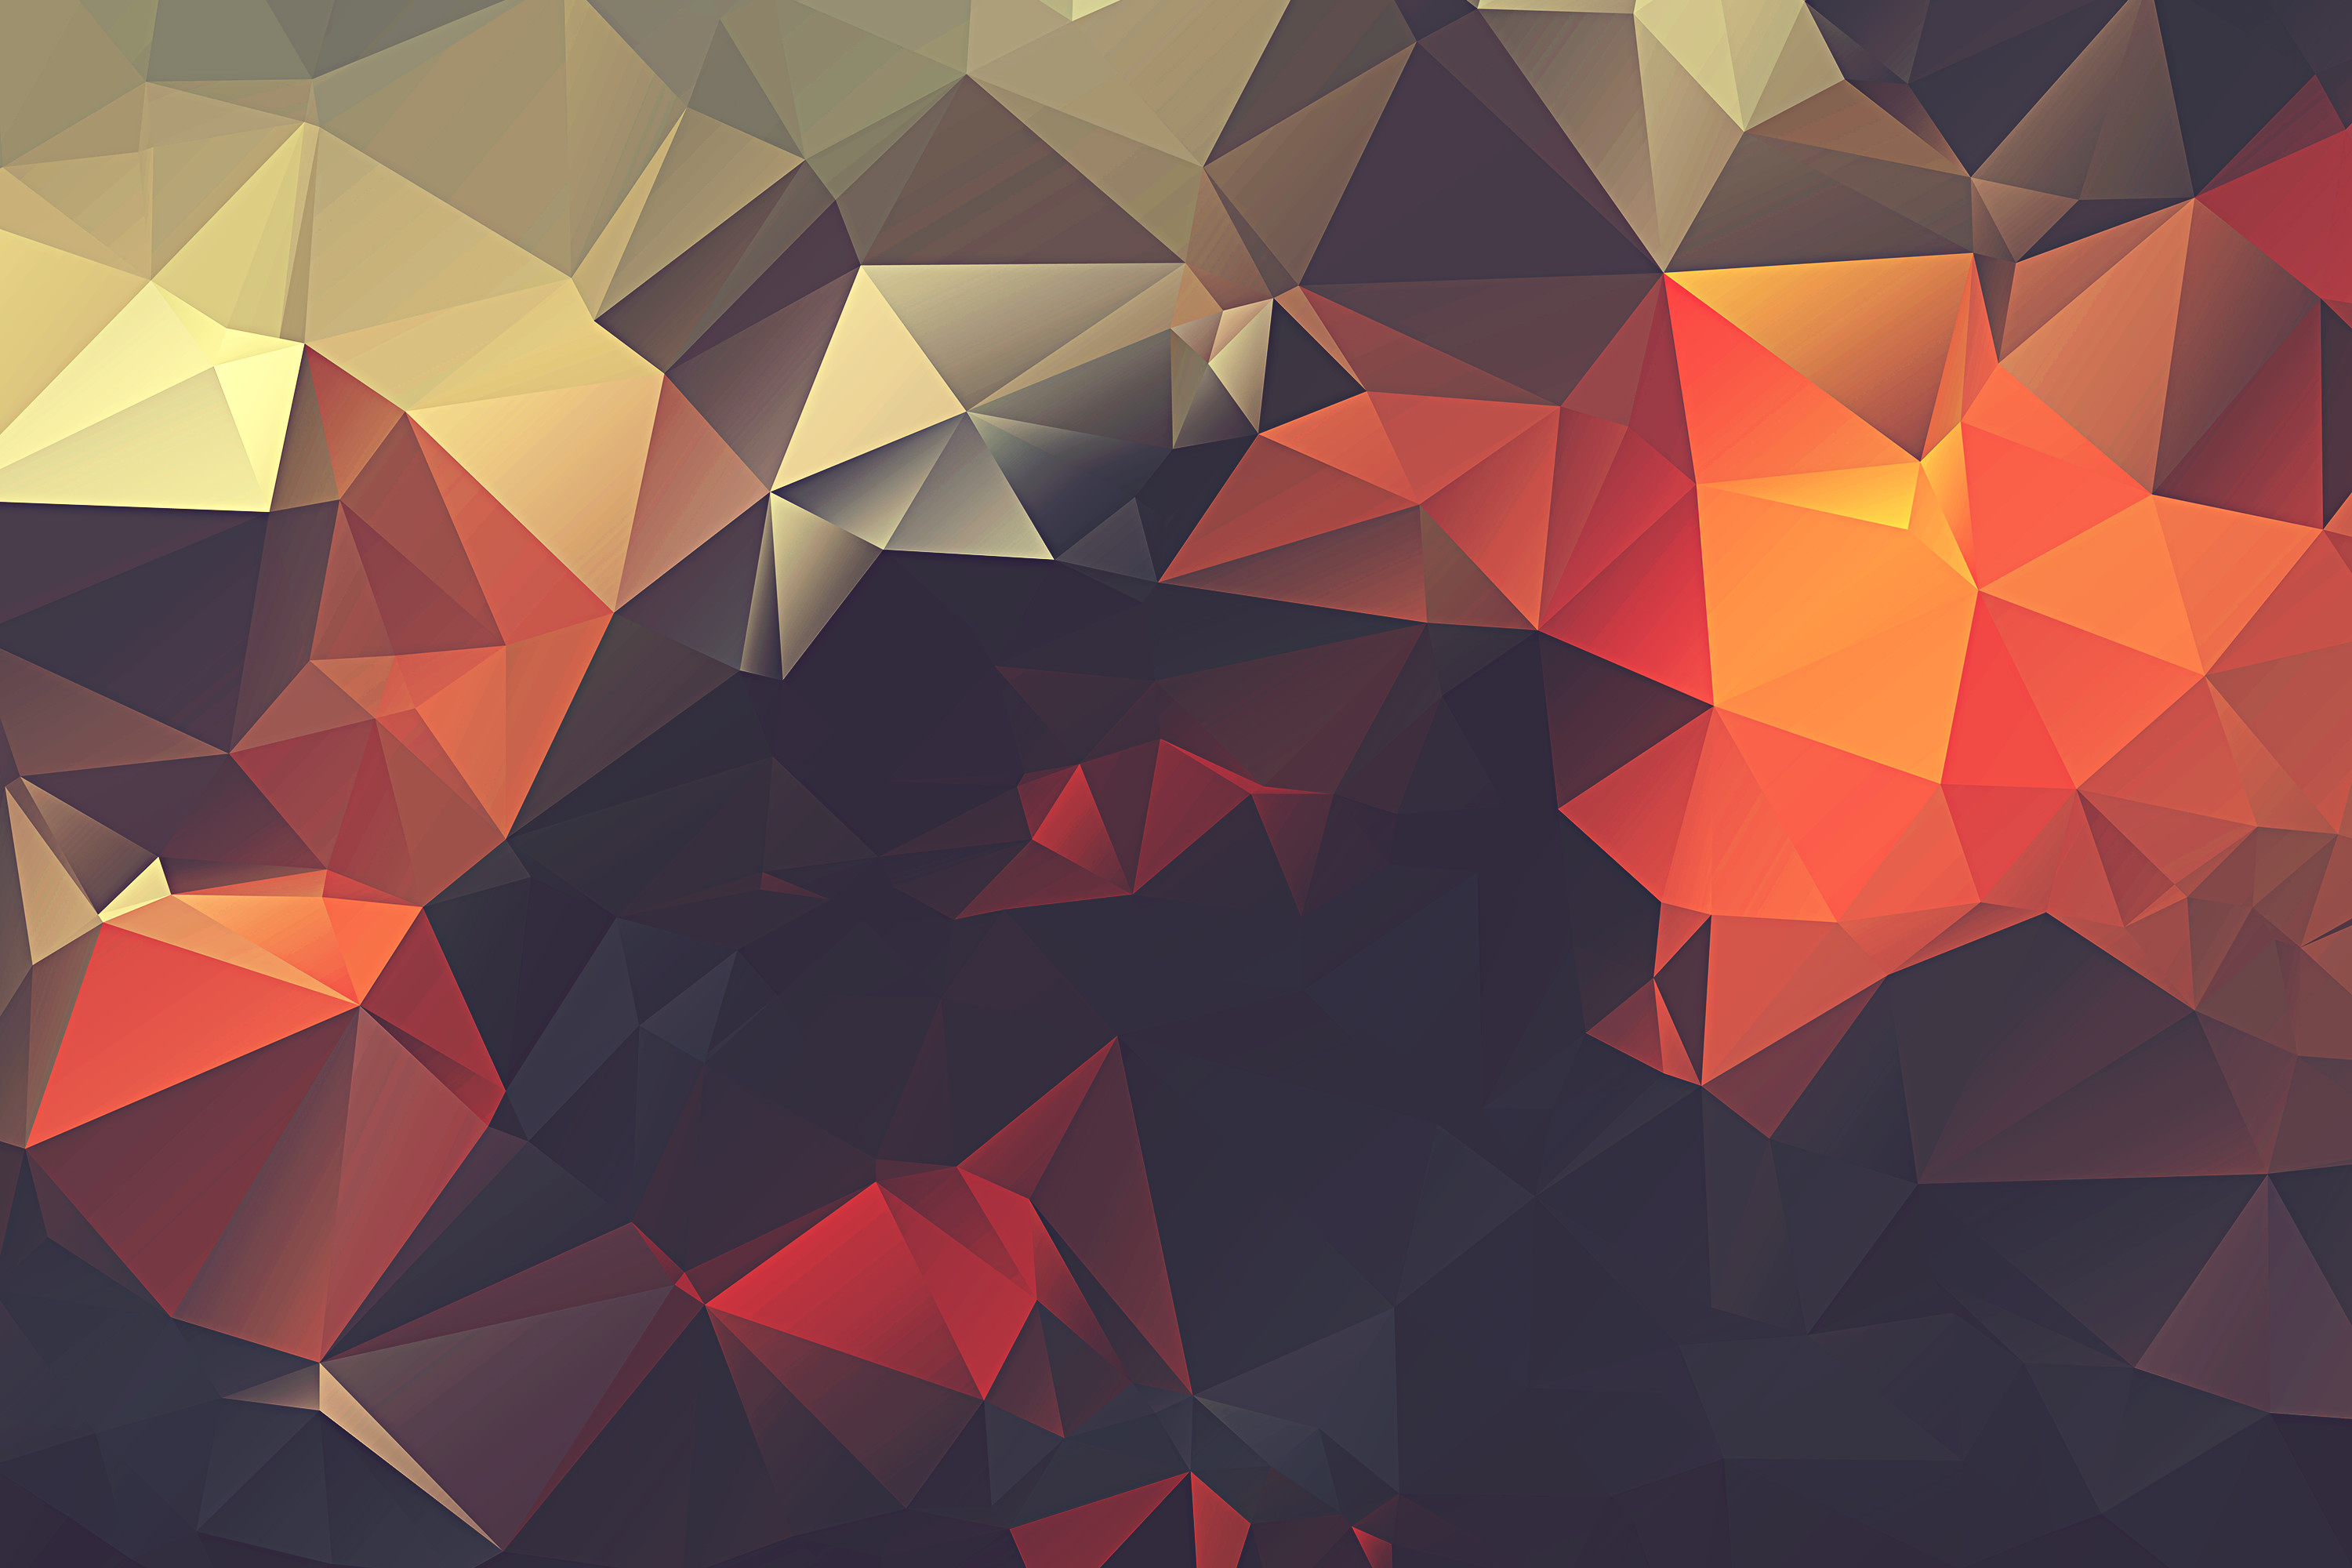 Android Wallpapers of the week gallery: